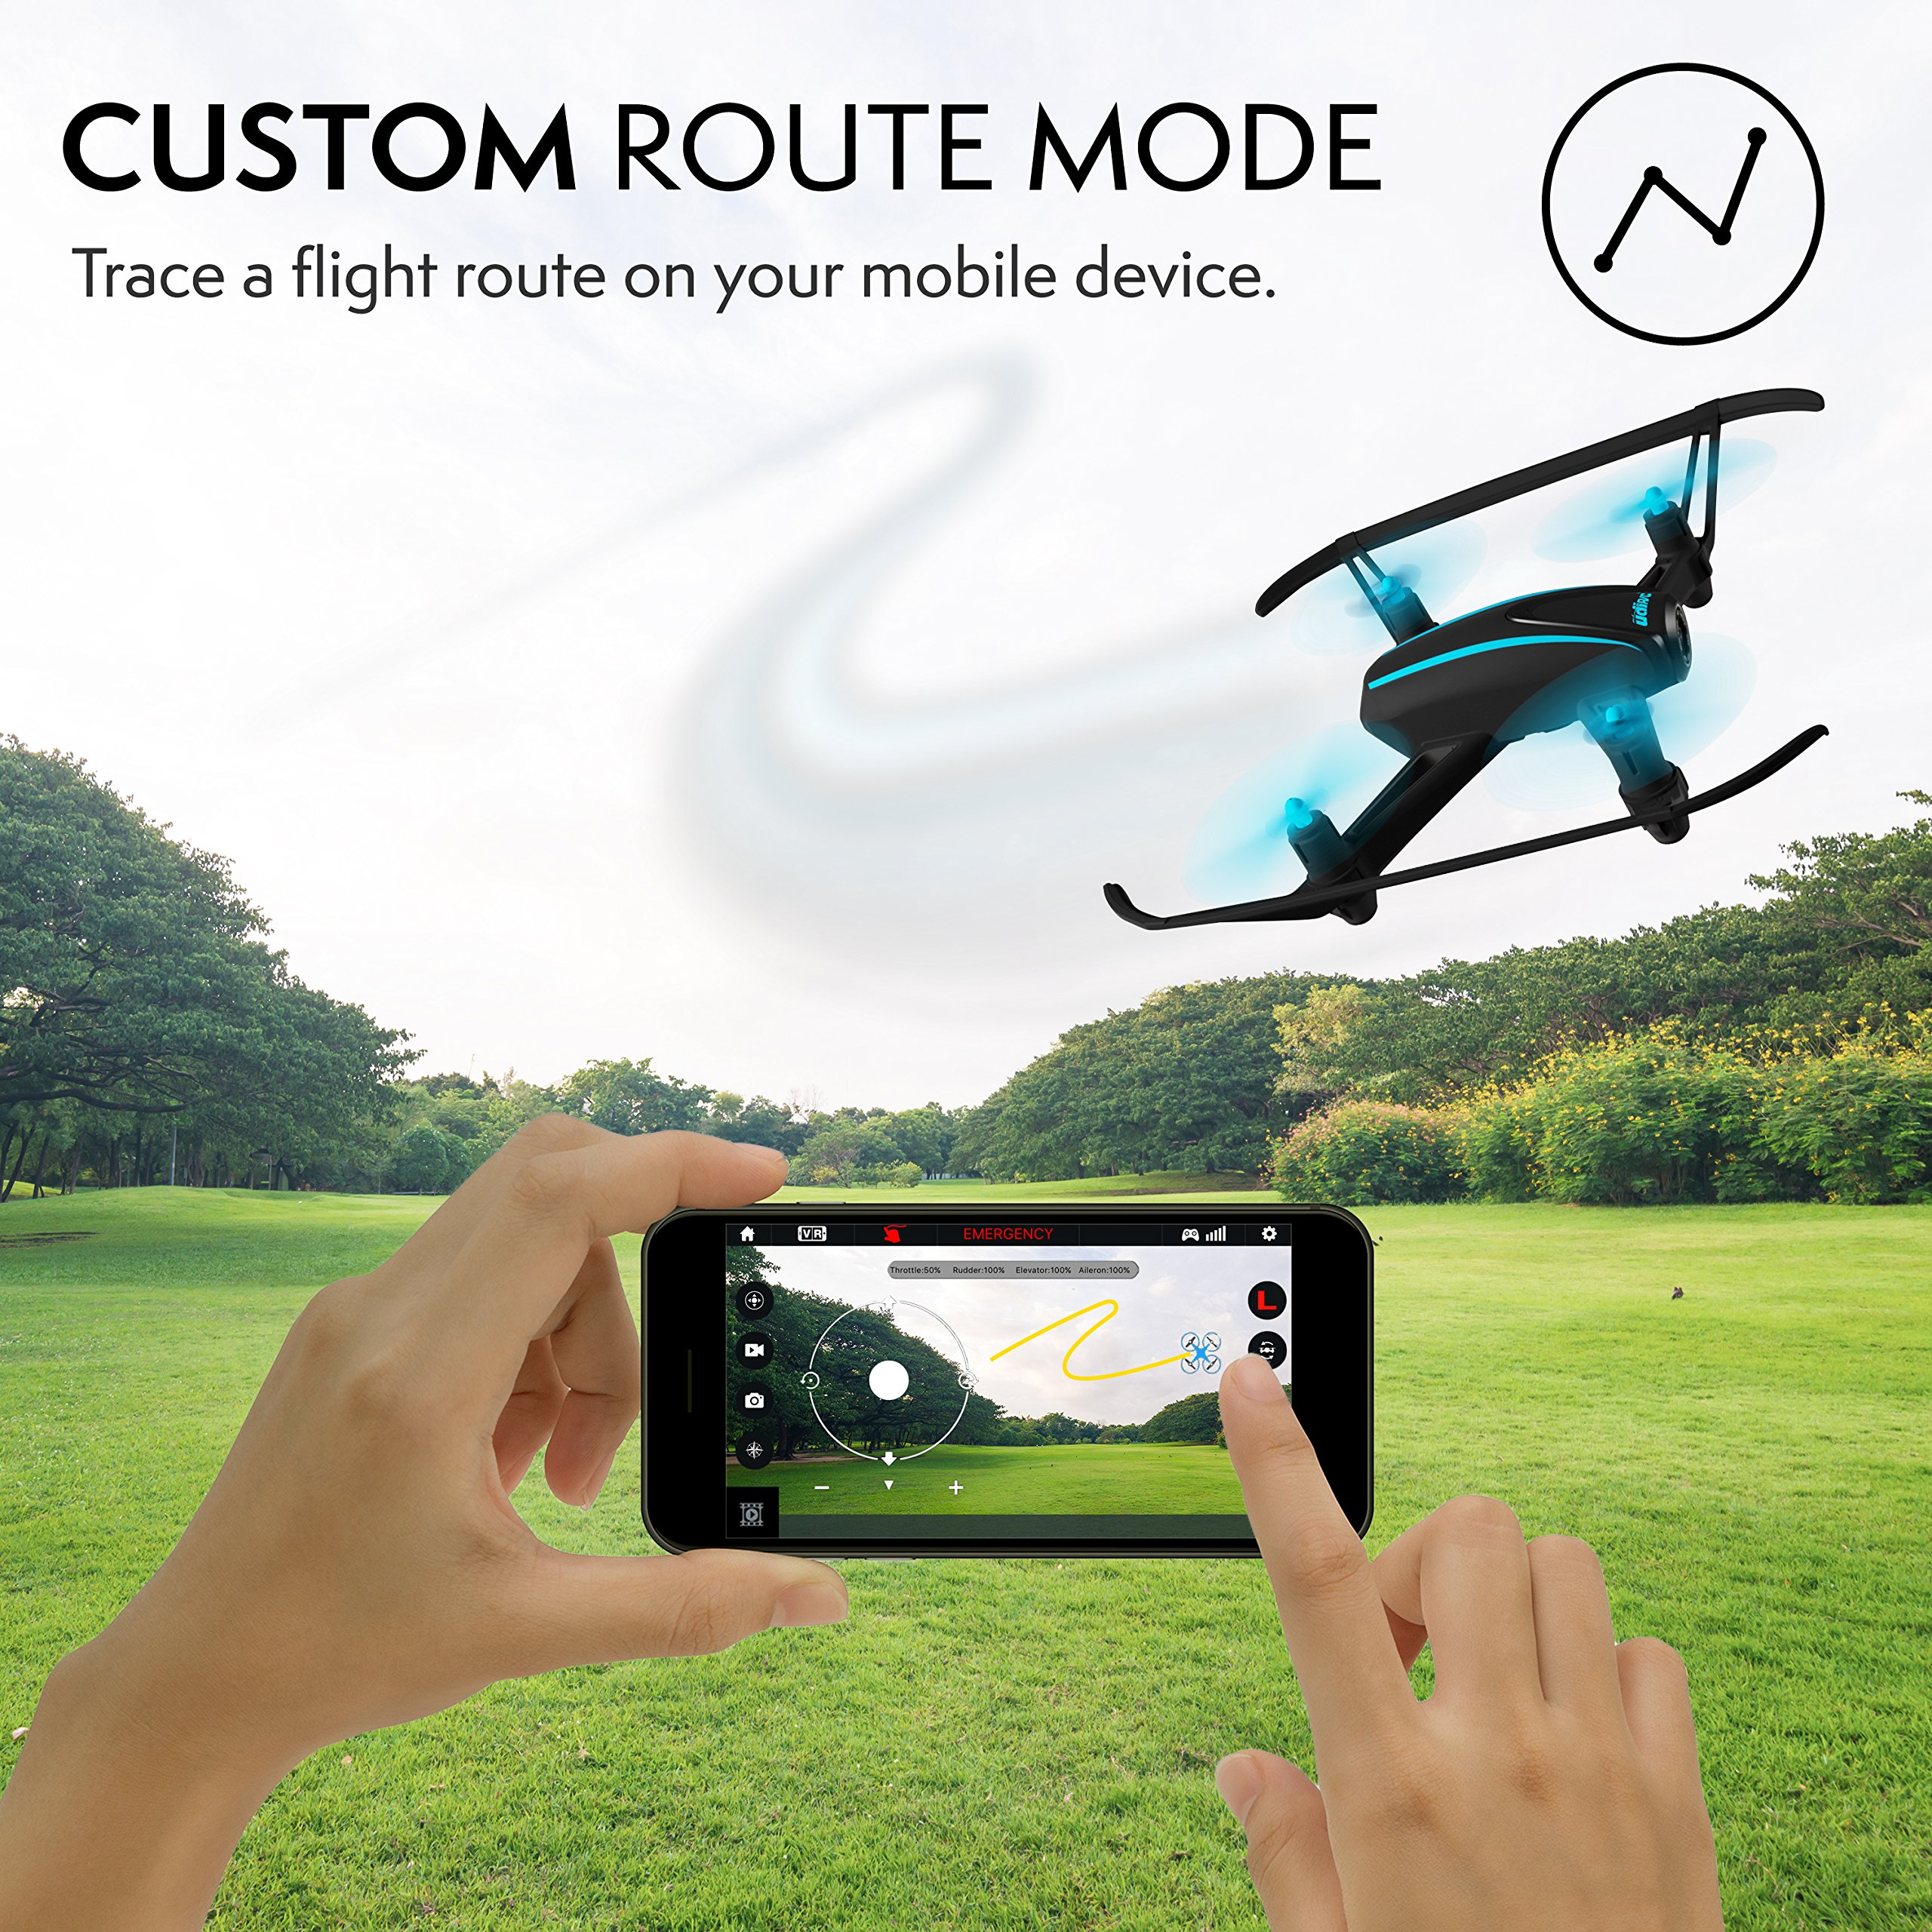 Force1 HD Drone with Camera – RC Camera Drones for Kids & Pros - U34W Dragonfly Drone with Camera Live Video, Altitude Hold & Wi-Fi FPV - Easy to Fly Quadcopter Drones for Beginners by Force1 (Image #8)